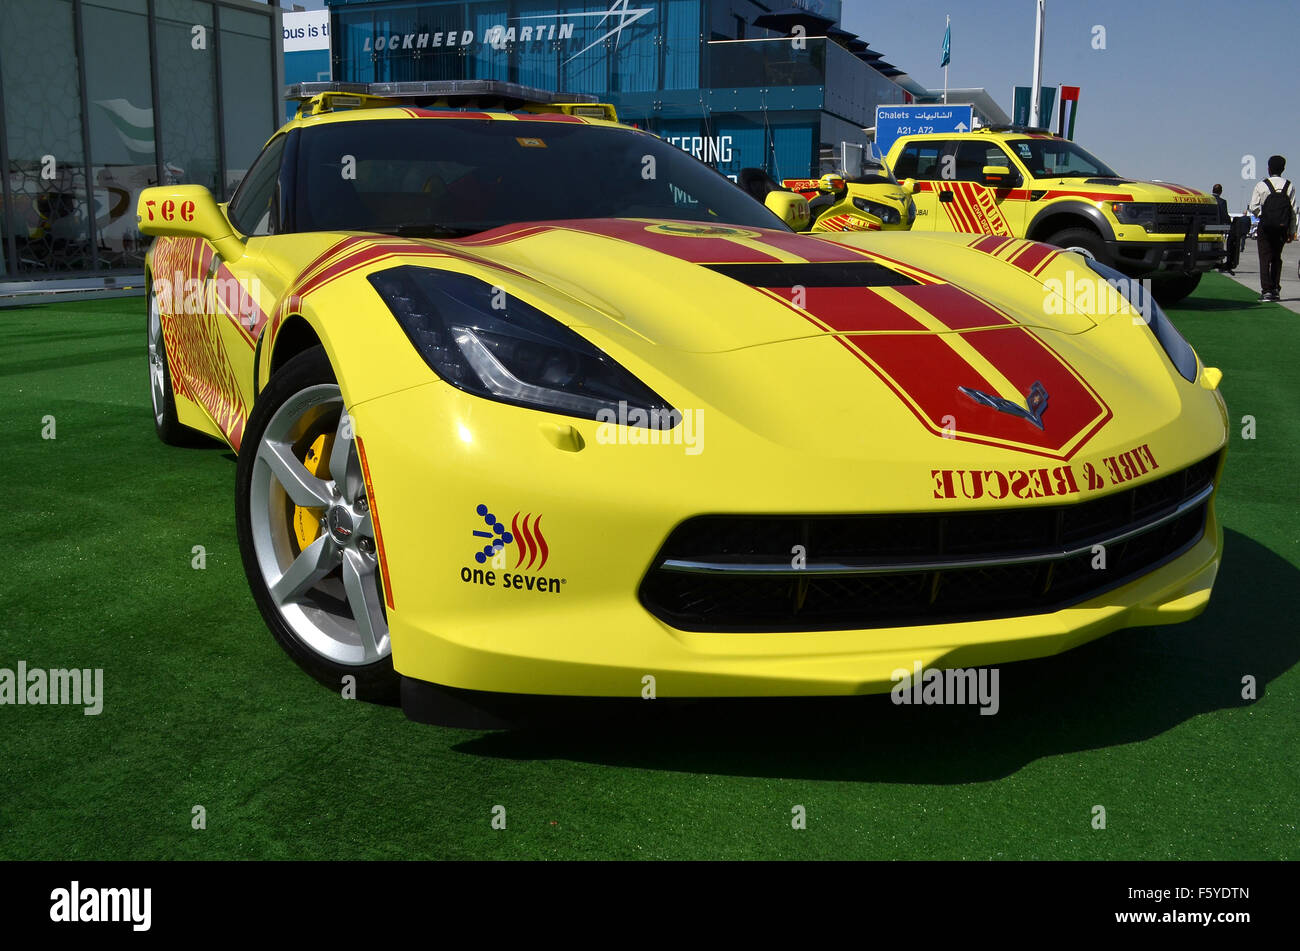 Dubai, UAE. 10th November, 2015. Hot Rod: Dubai Civil Defence are using a brght yellow V8-powered Chevrolet Corvette Stock Photo